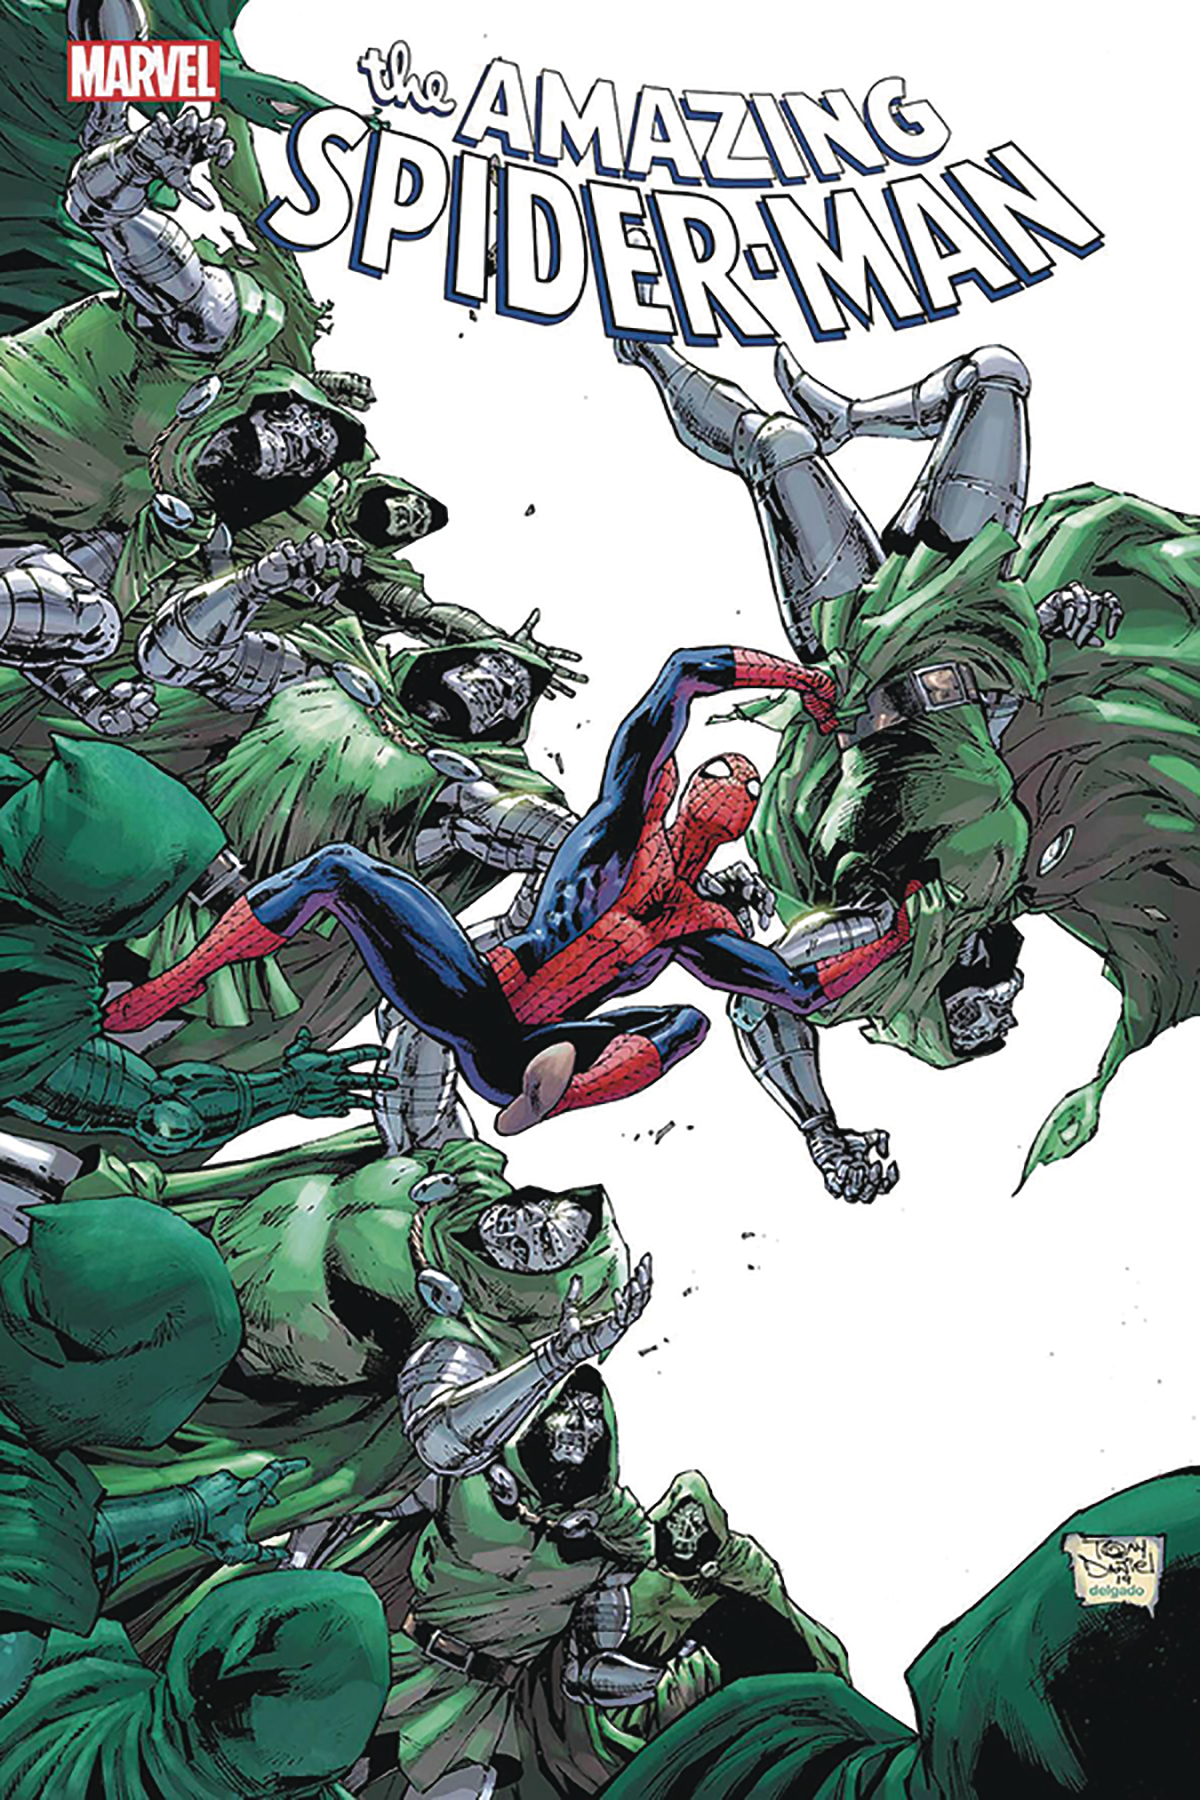 DF AMAZING SPIDERMAN #35 SGN SPENCER